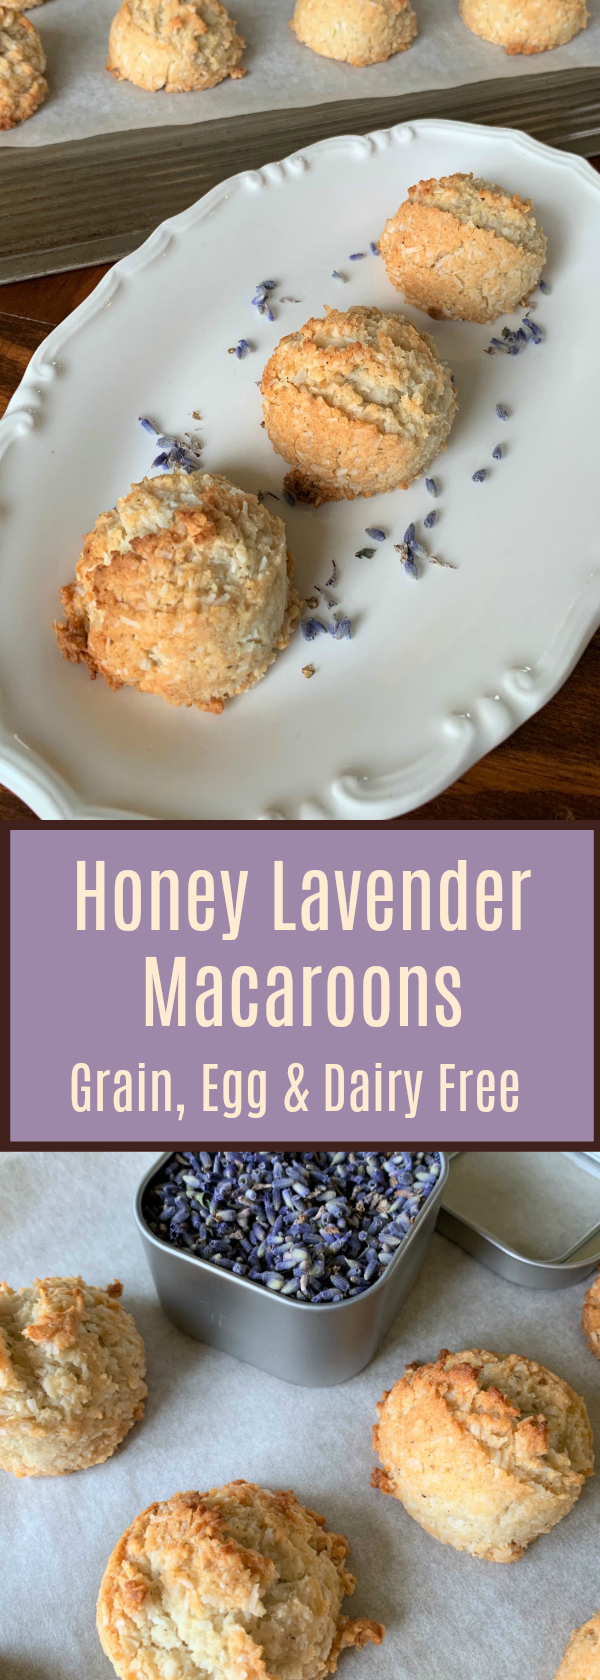 Honey Lavender Macaroons are so light and delicious for Spring! These are Gluten, Grain, Dairy and Egg Free and AIP Paleo!